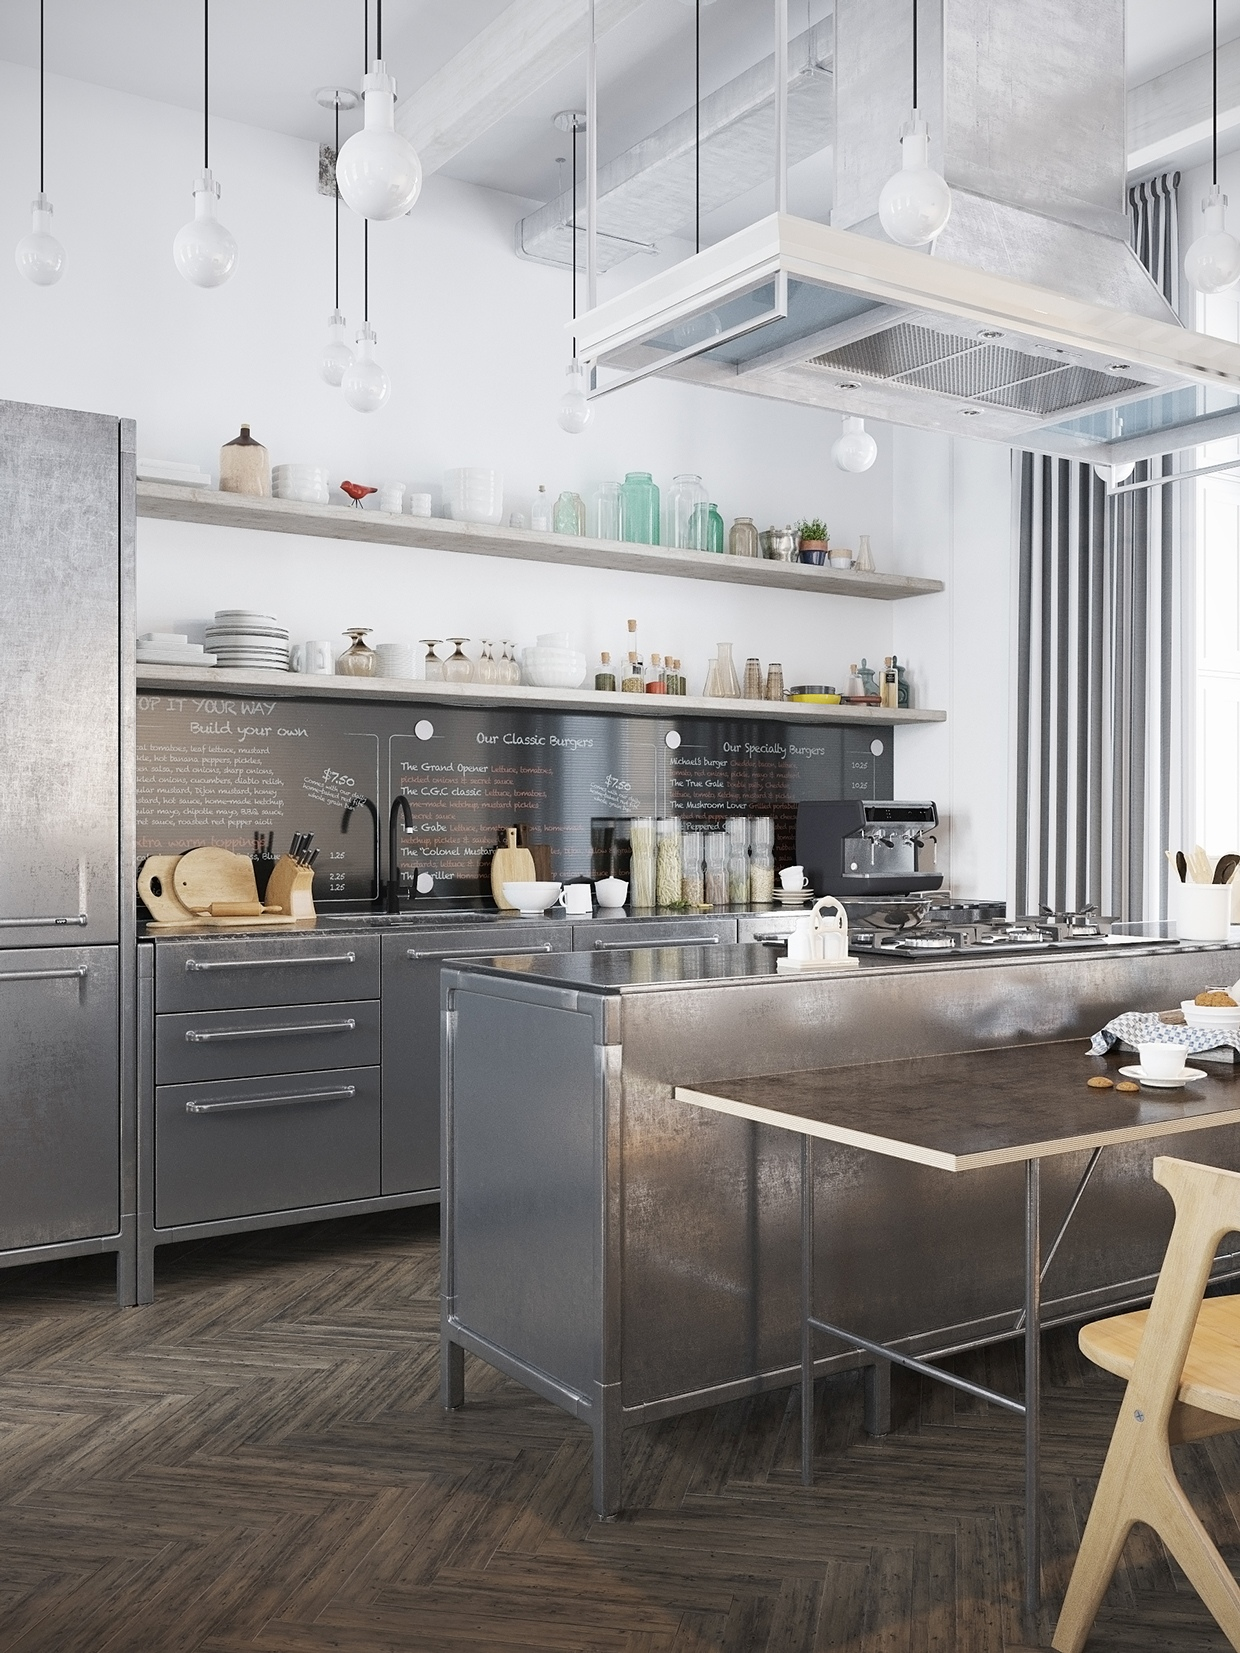 Scandinavian kitchen interior design style